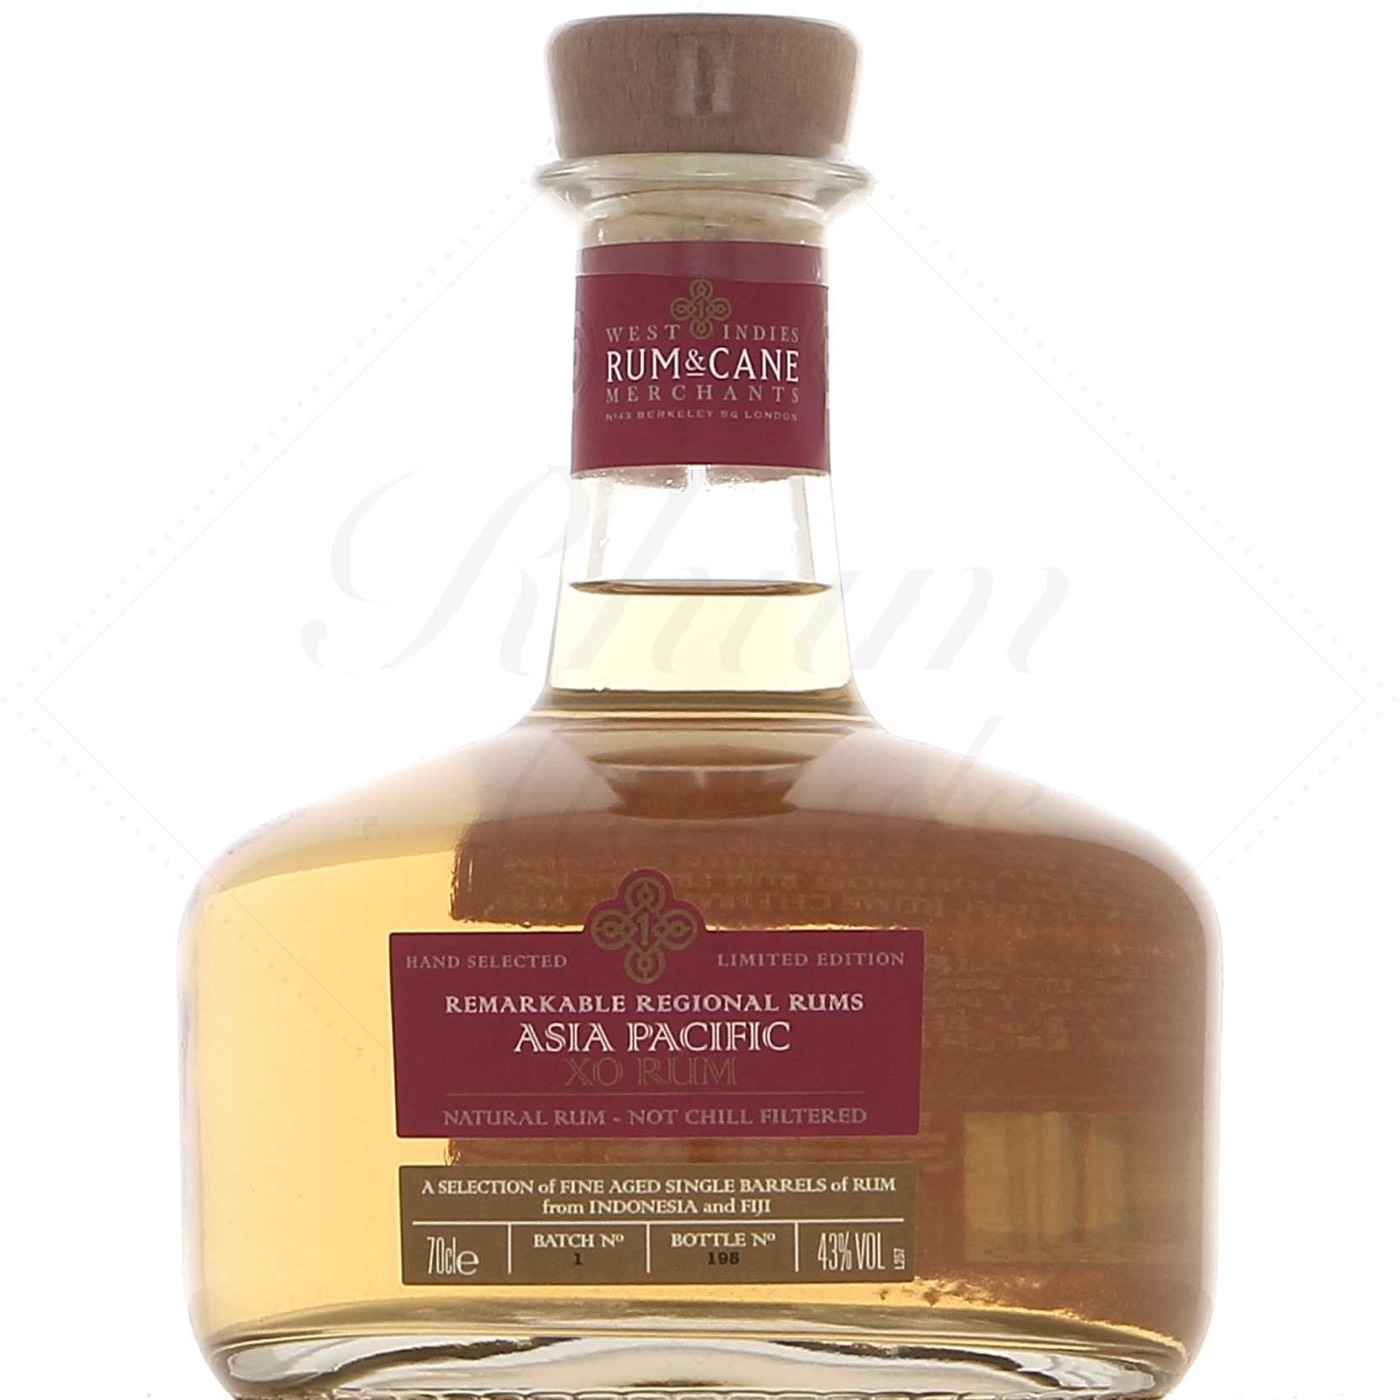 Bottle image of Rum & Cane Asia Pacific XO